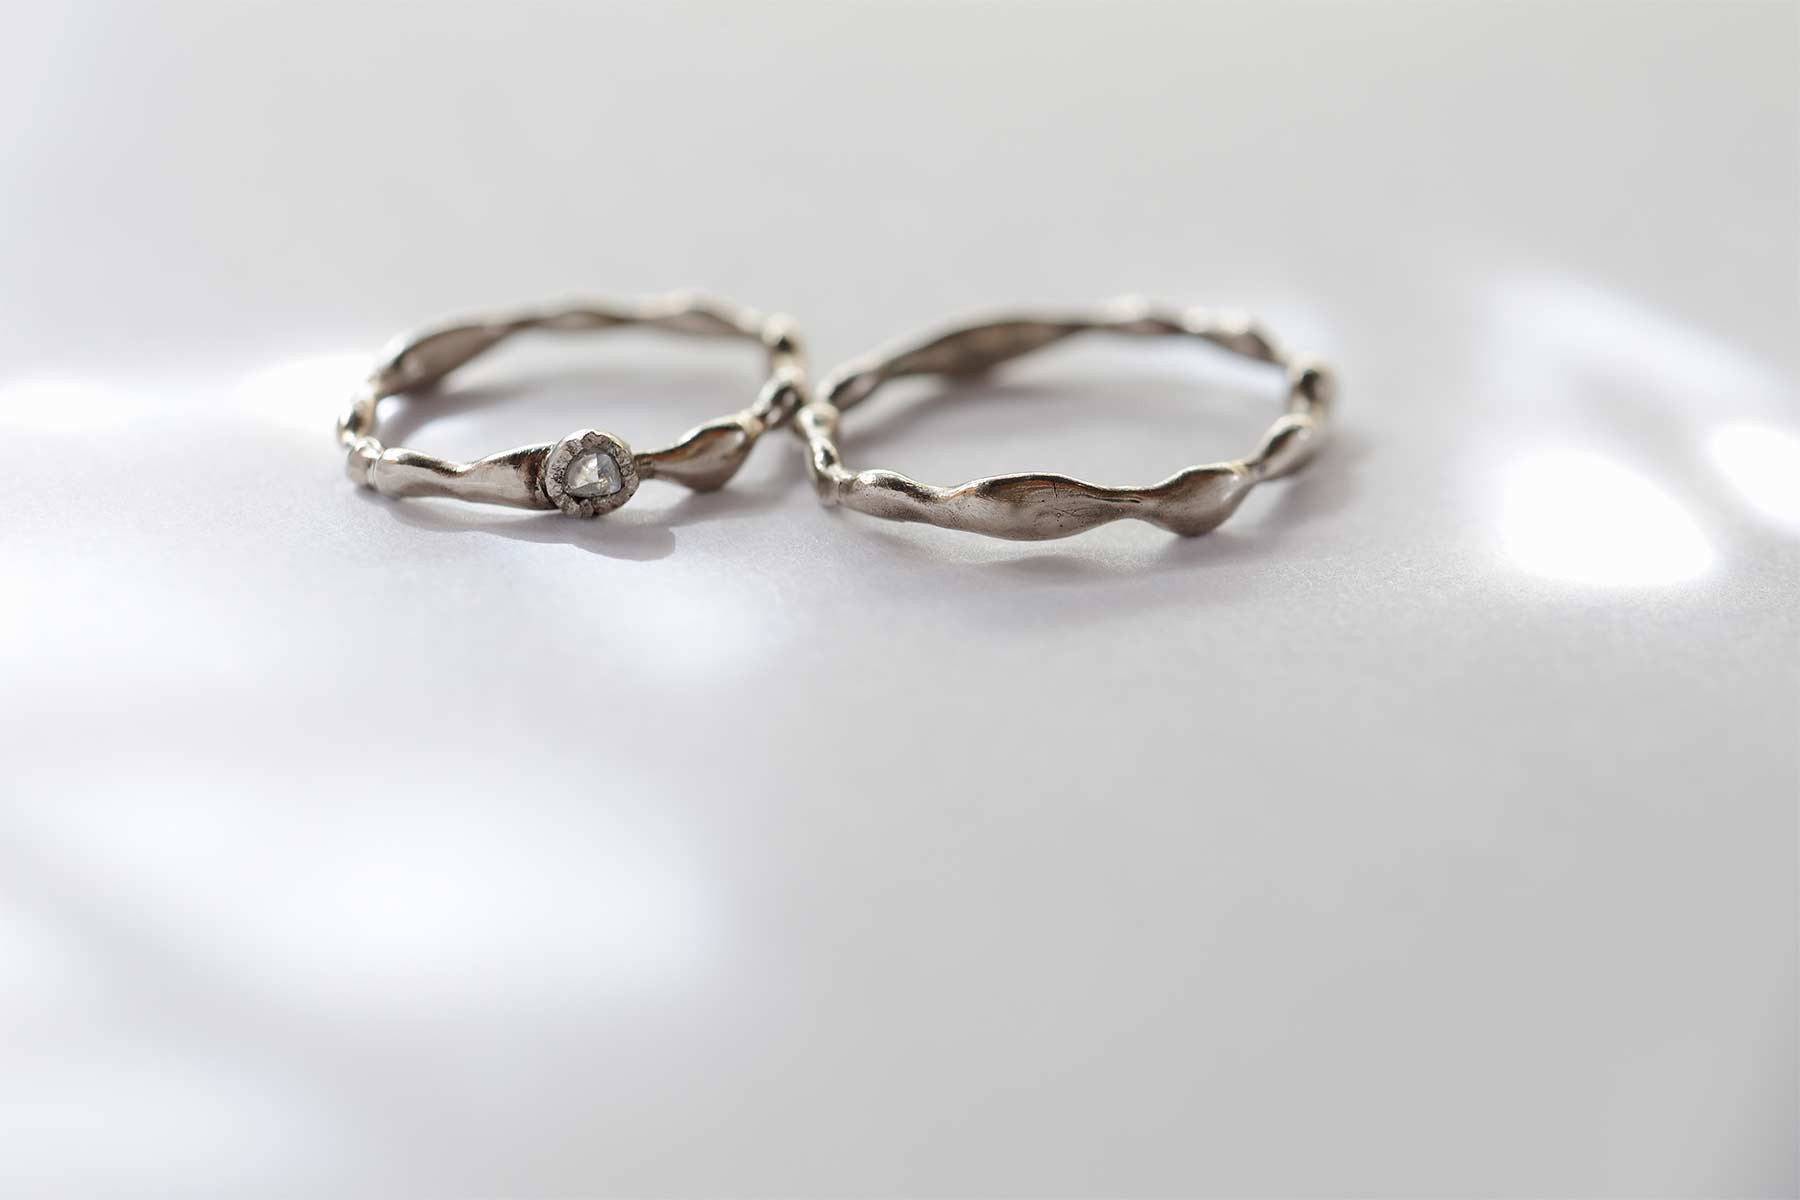 The photo of the couple rings: Dawn